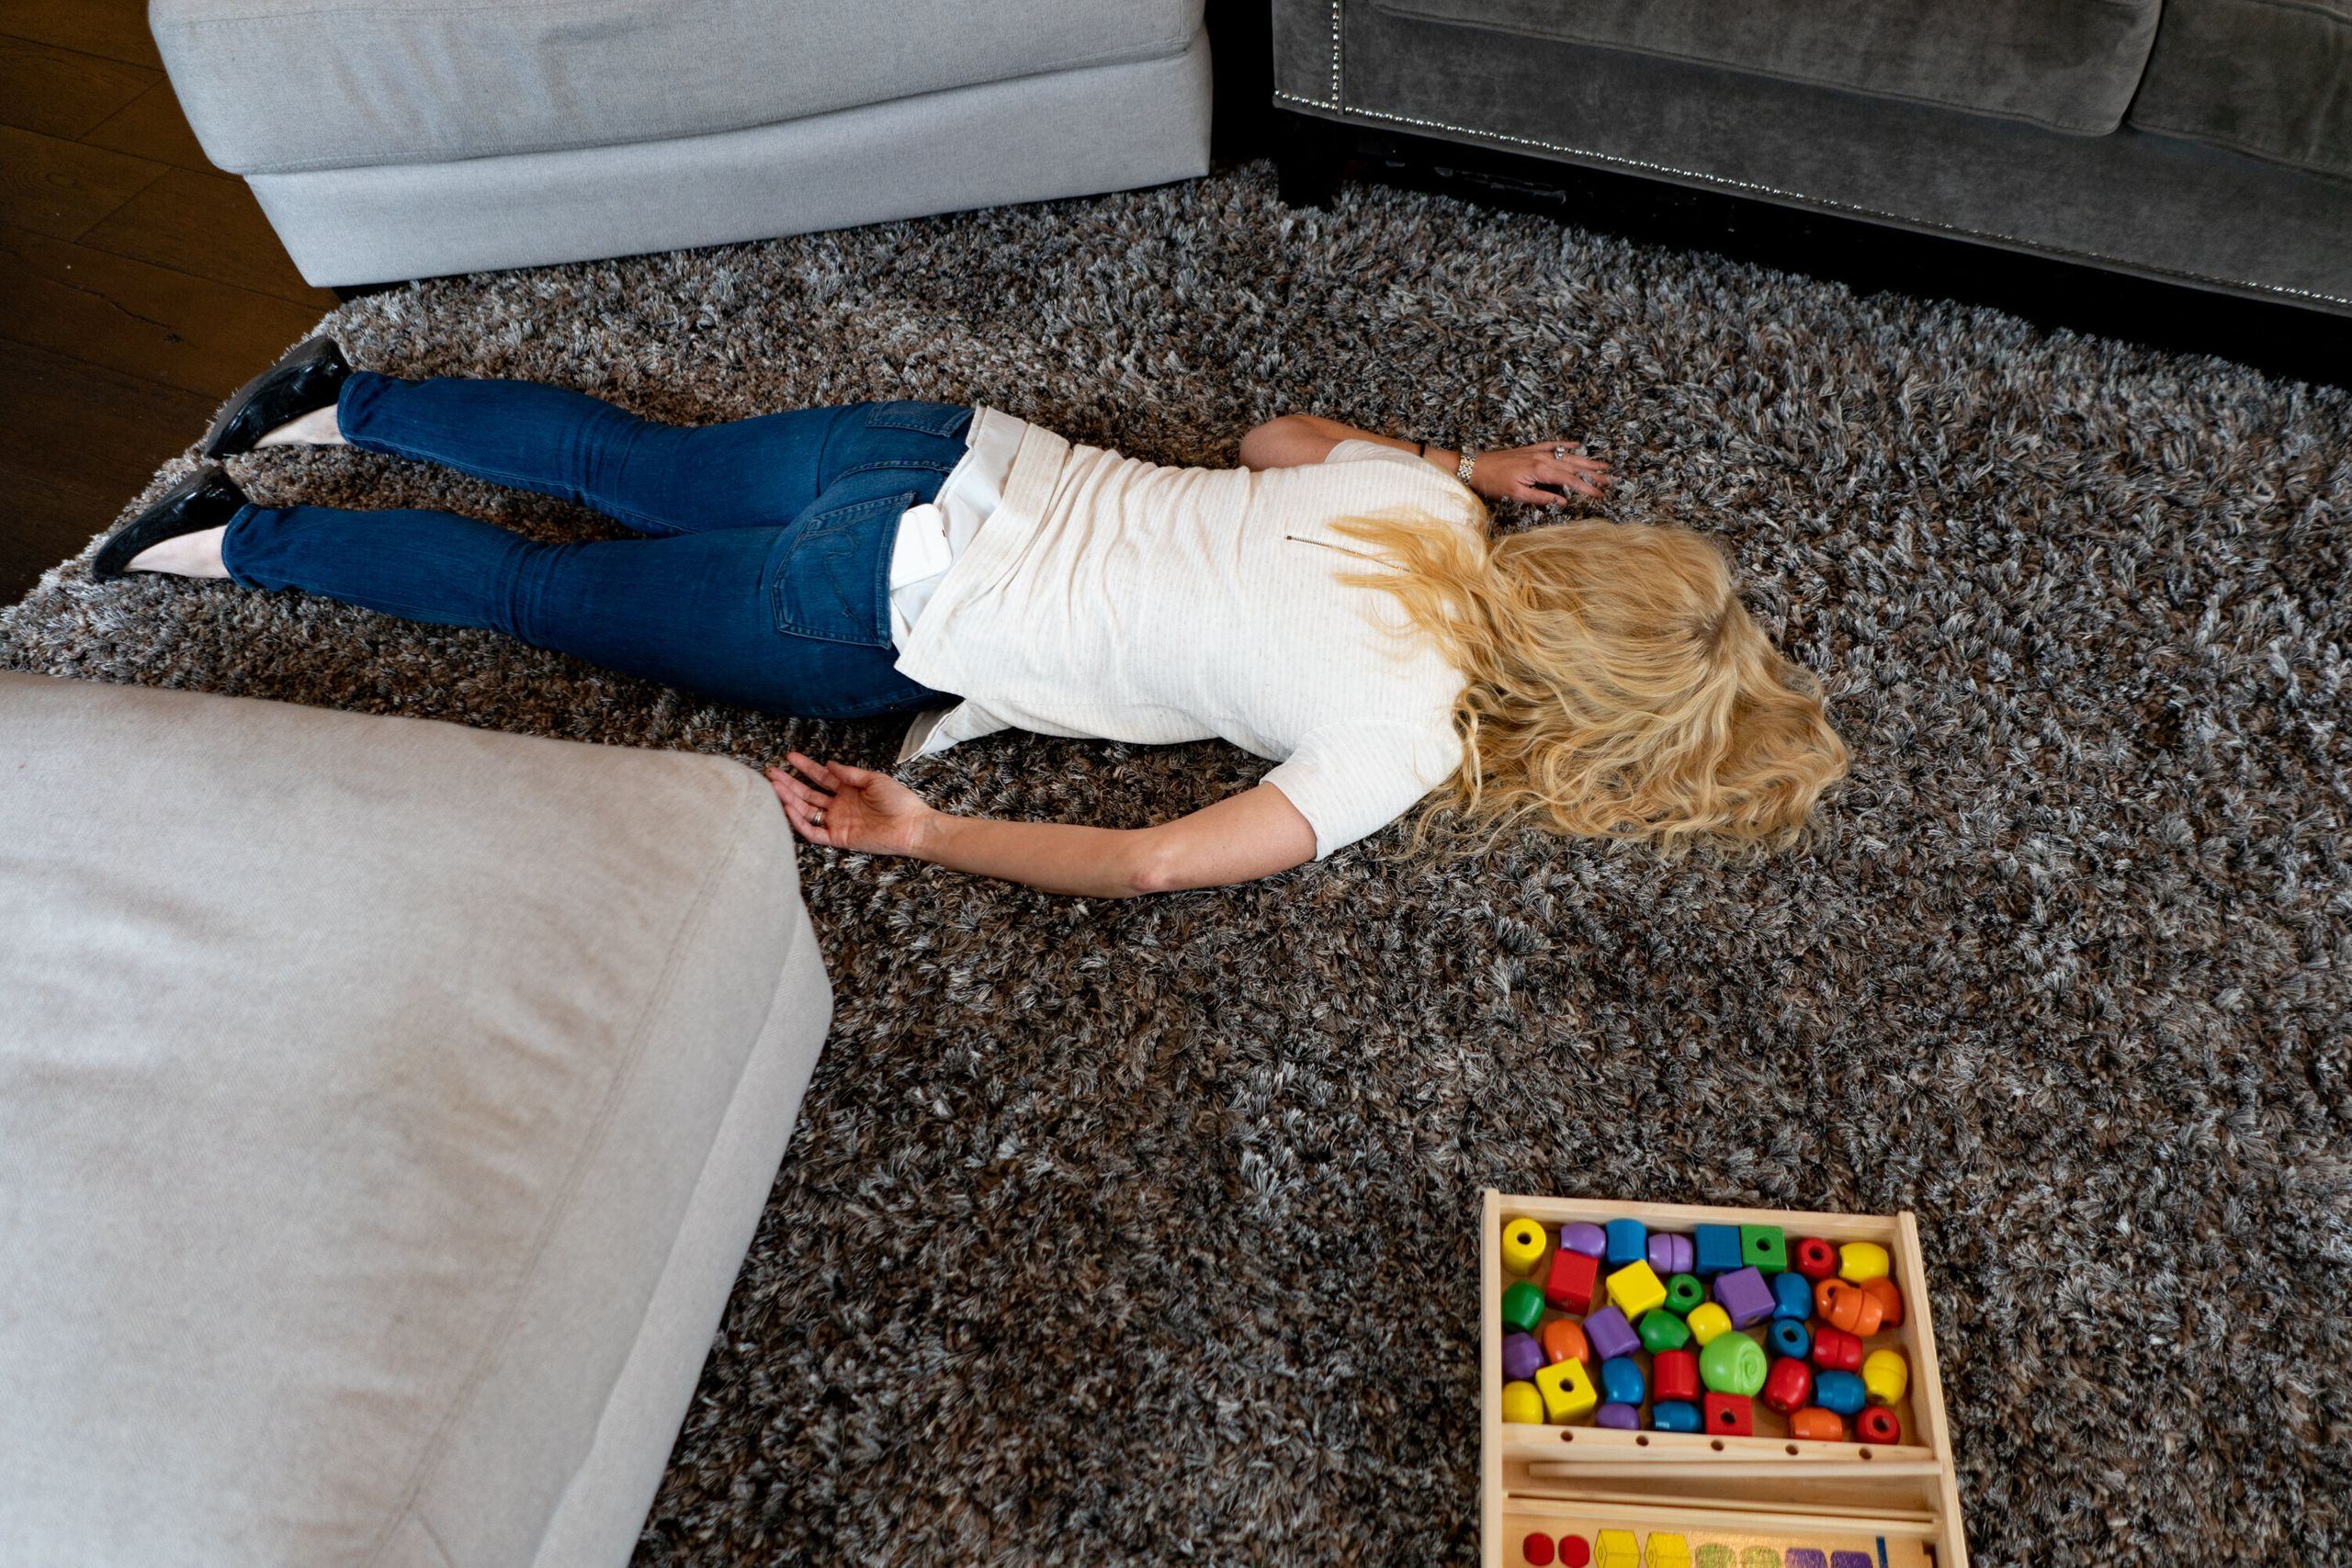 Amber lies on the floor of their family's home in a moment of exhaustion following her daily routine of caring for her